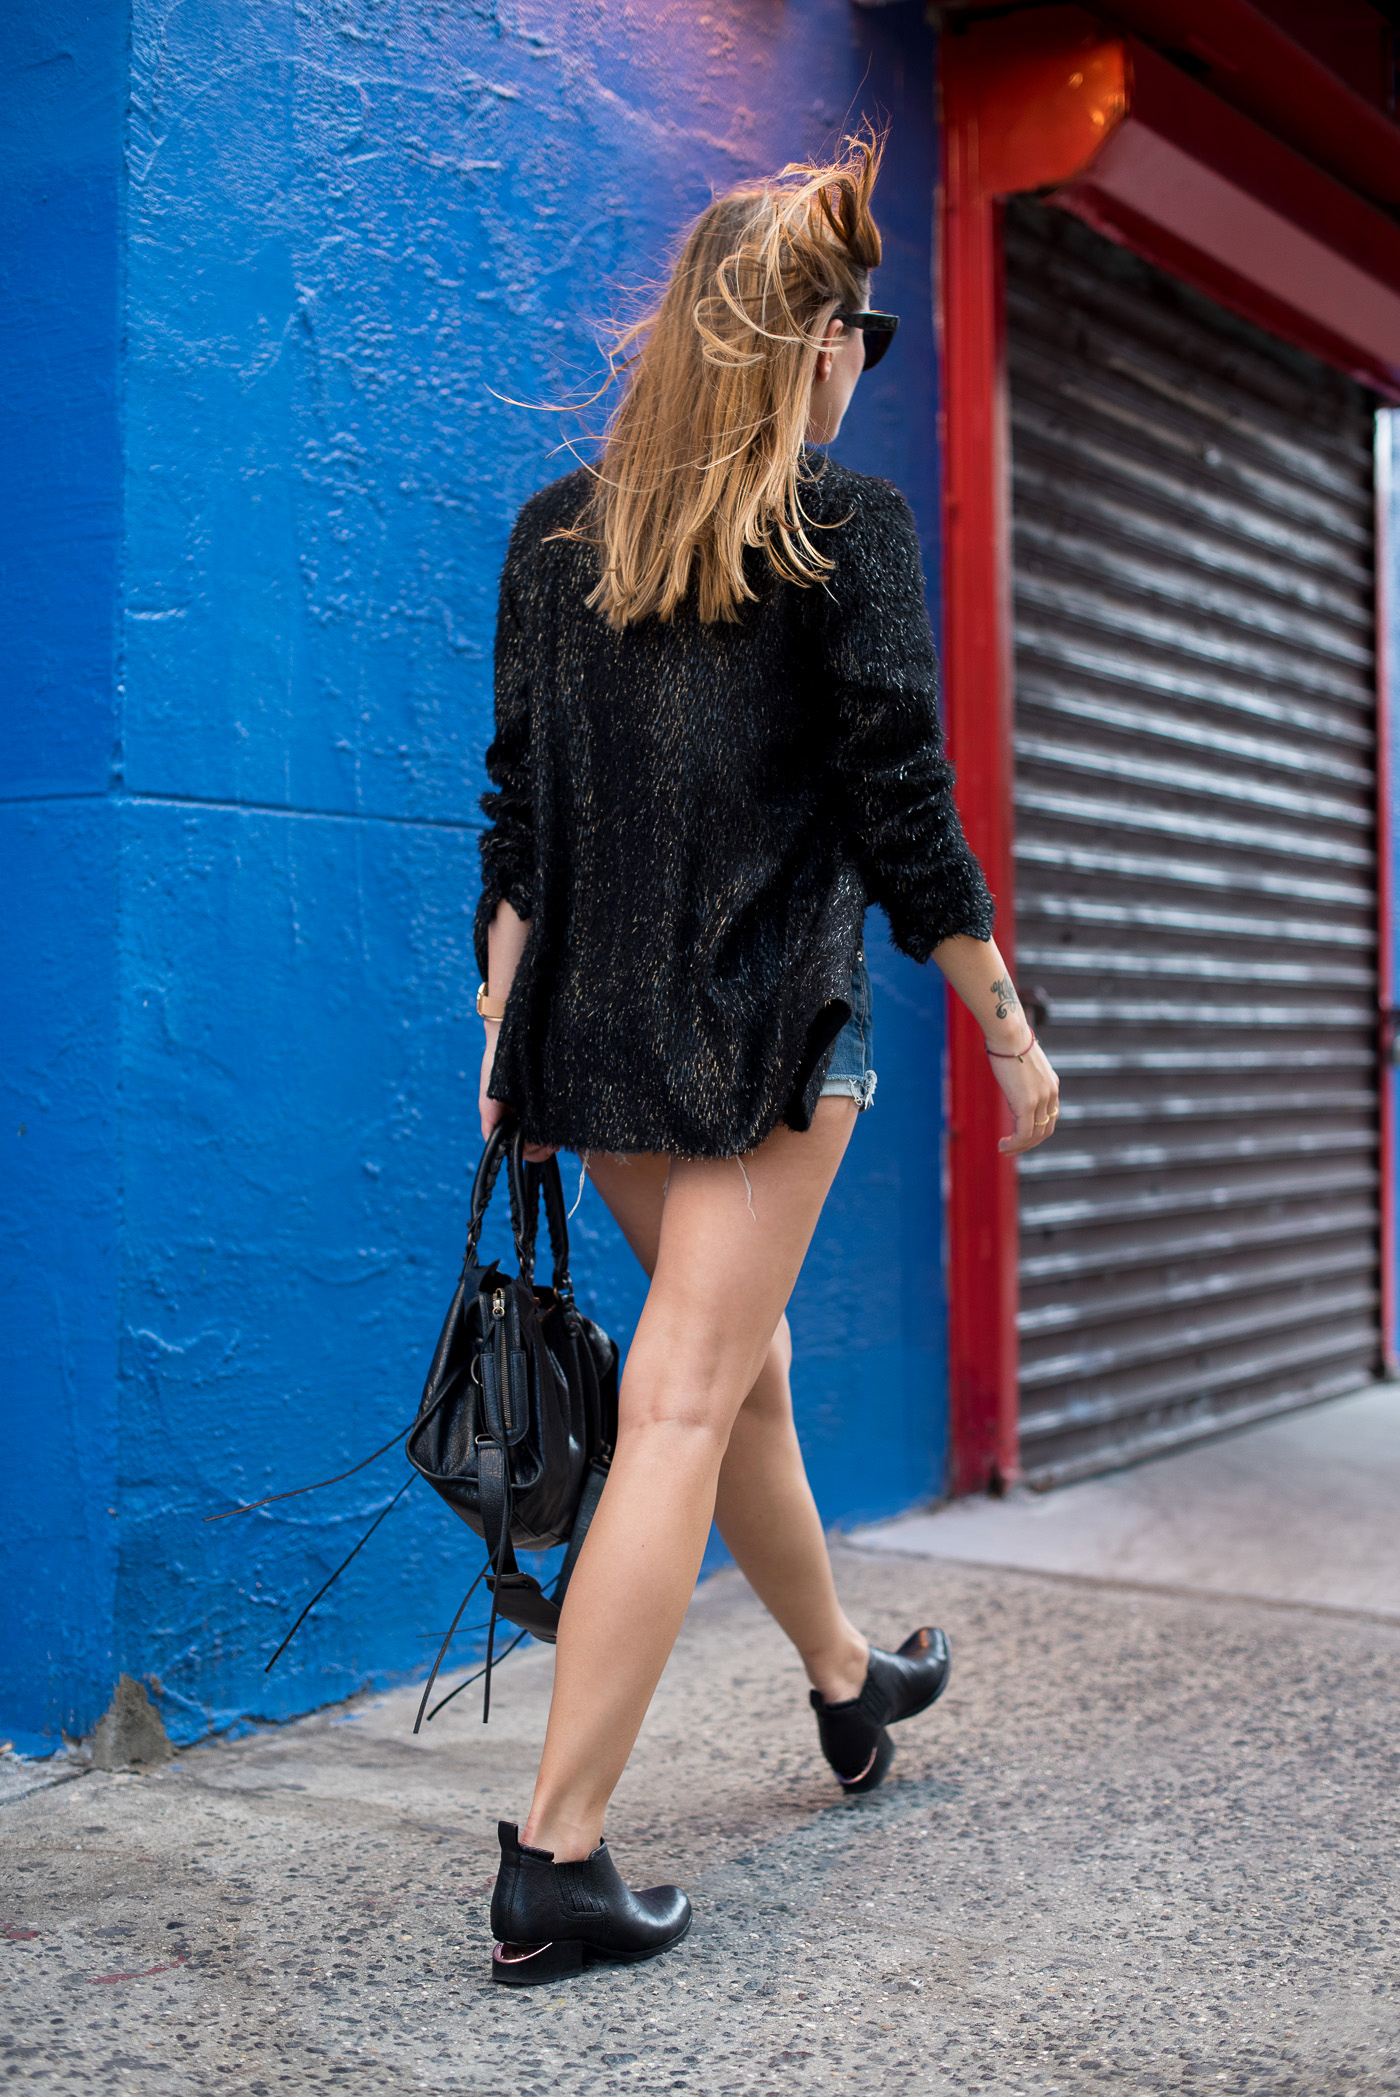 New_York_Rock_N_Roll_Outfit_5